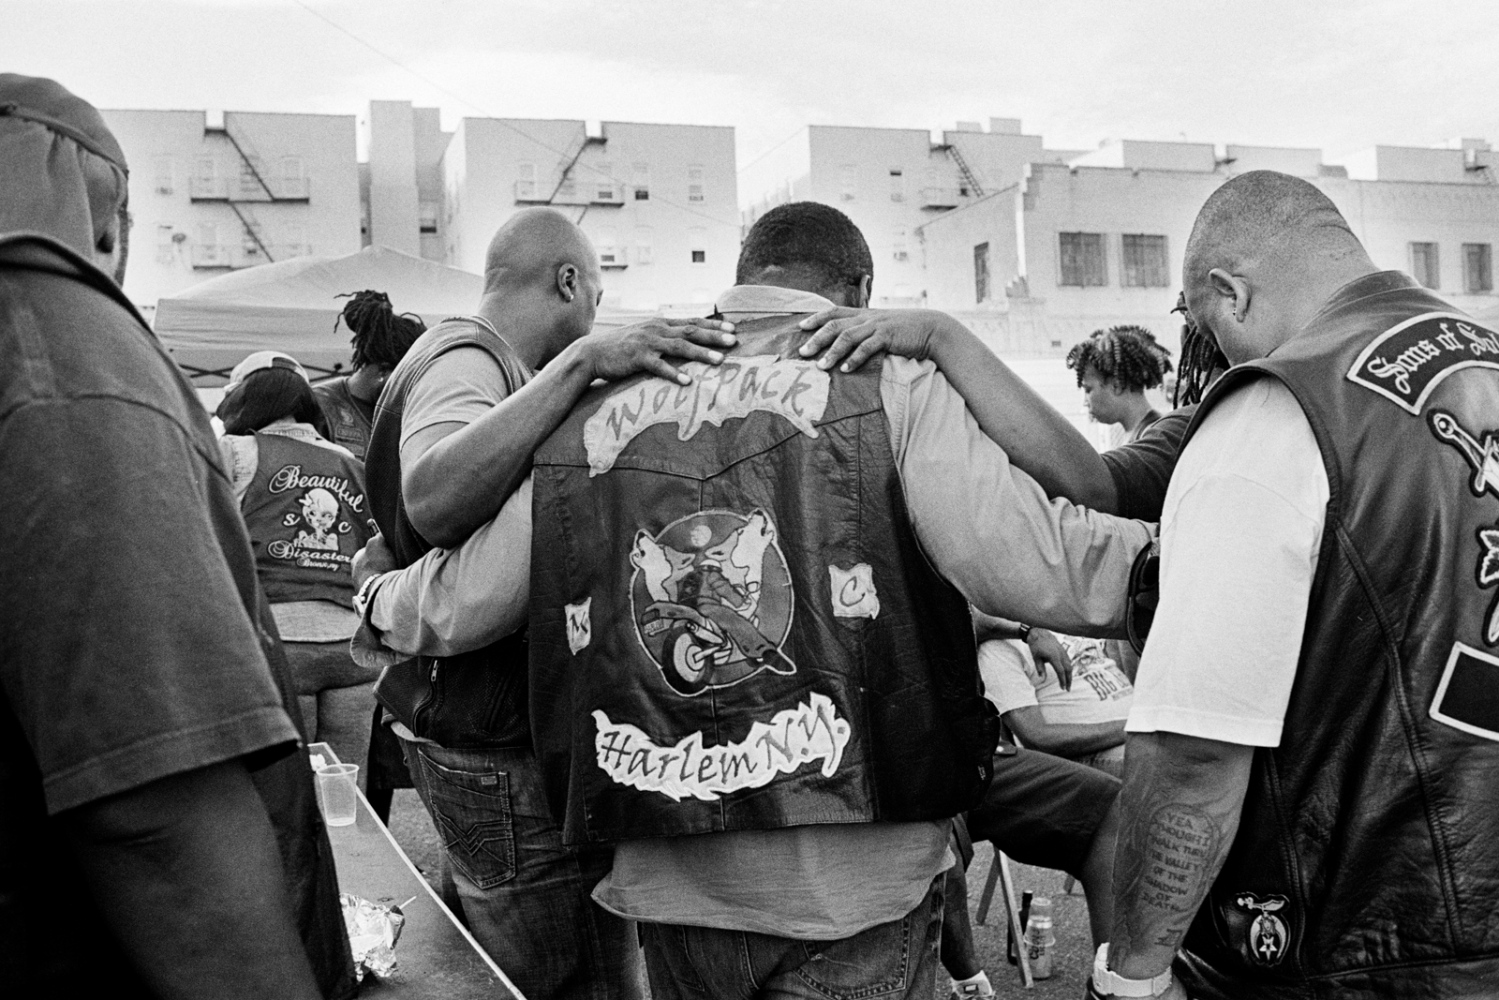 Clubs join together for a moment of silence for fallen riders at the Black Falcons MC bike blessing, The Bronx, 2016